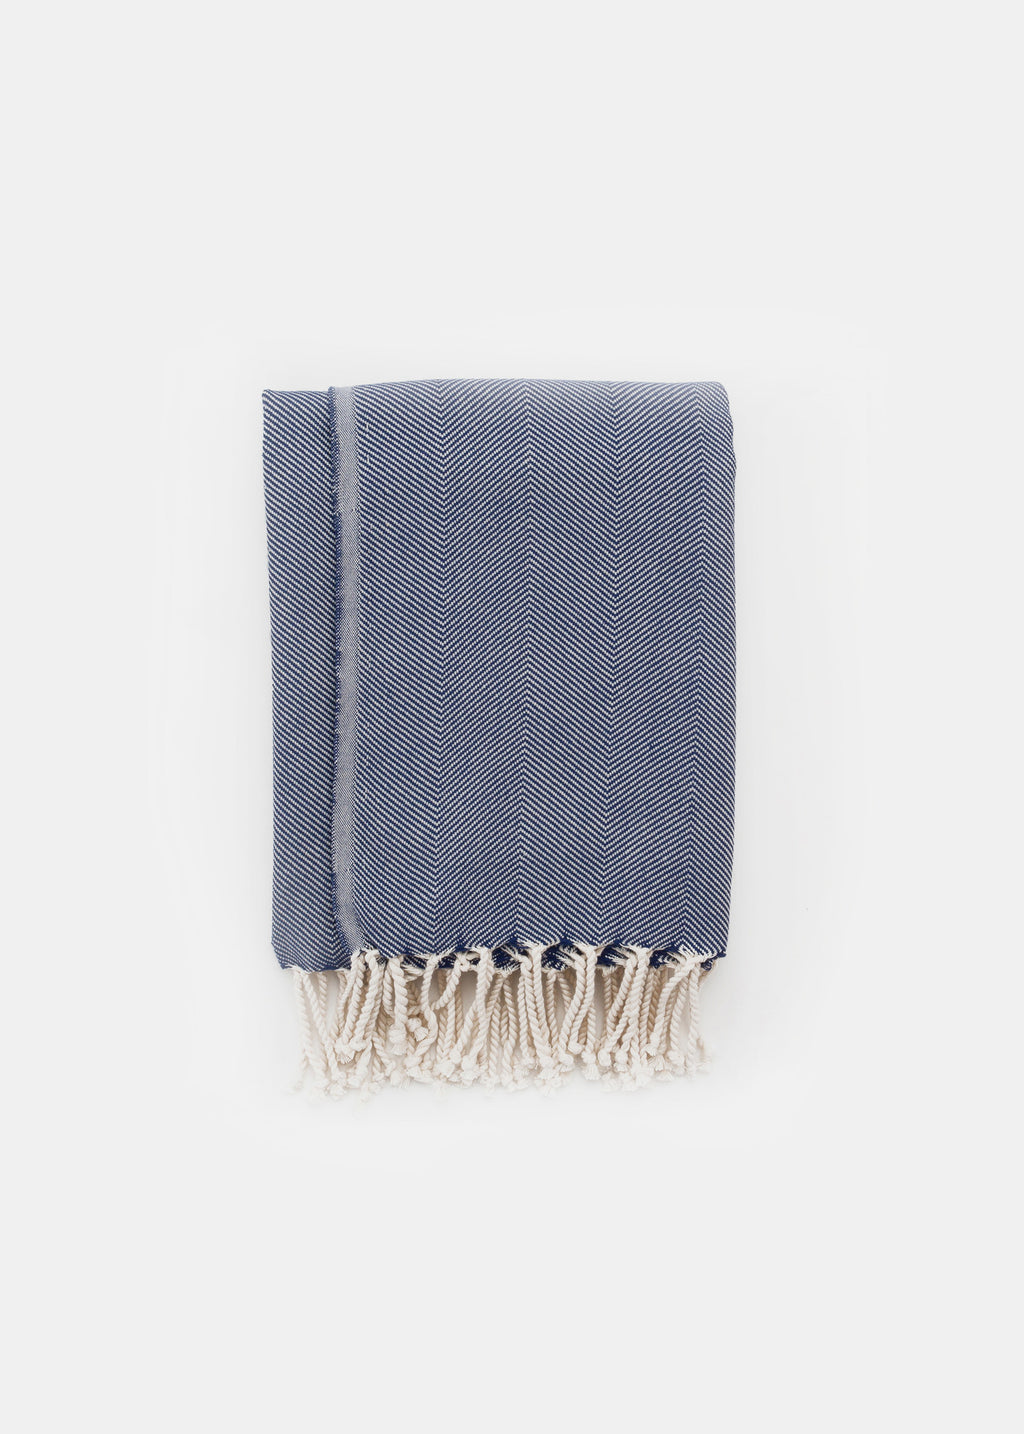 Turkish Towel Pattern Navy - YUYU Sustainable Home Goods